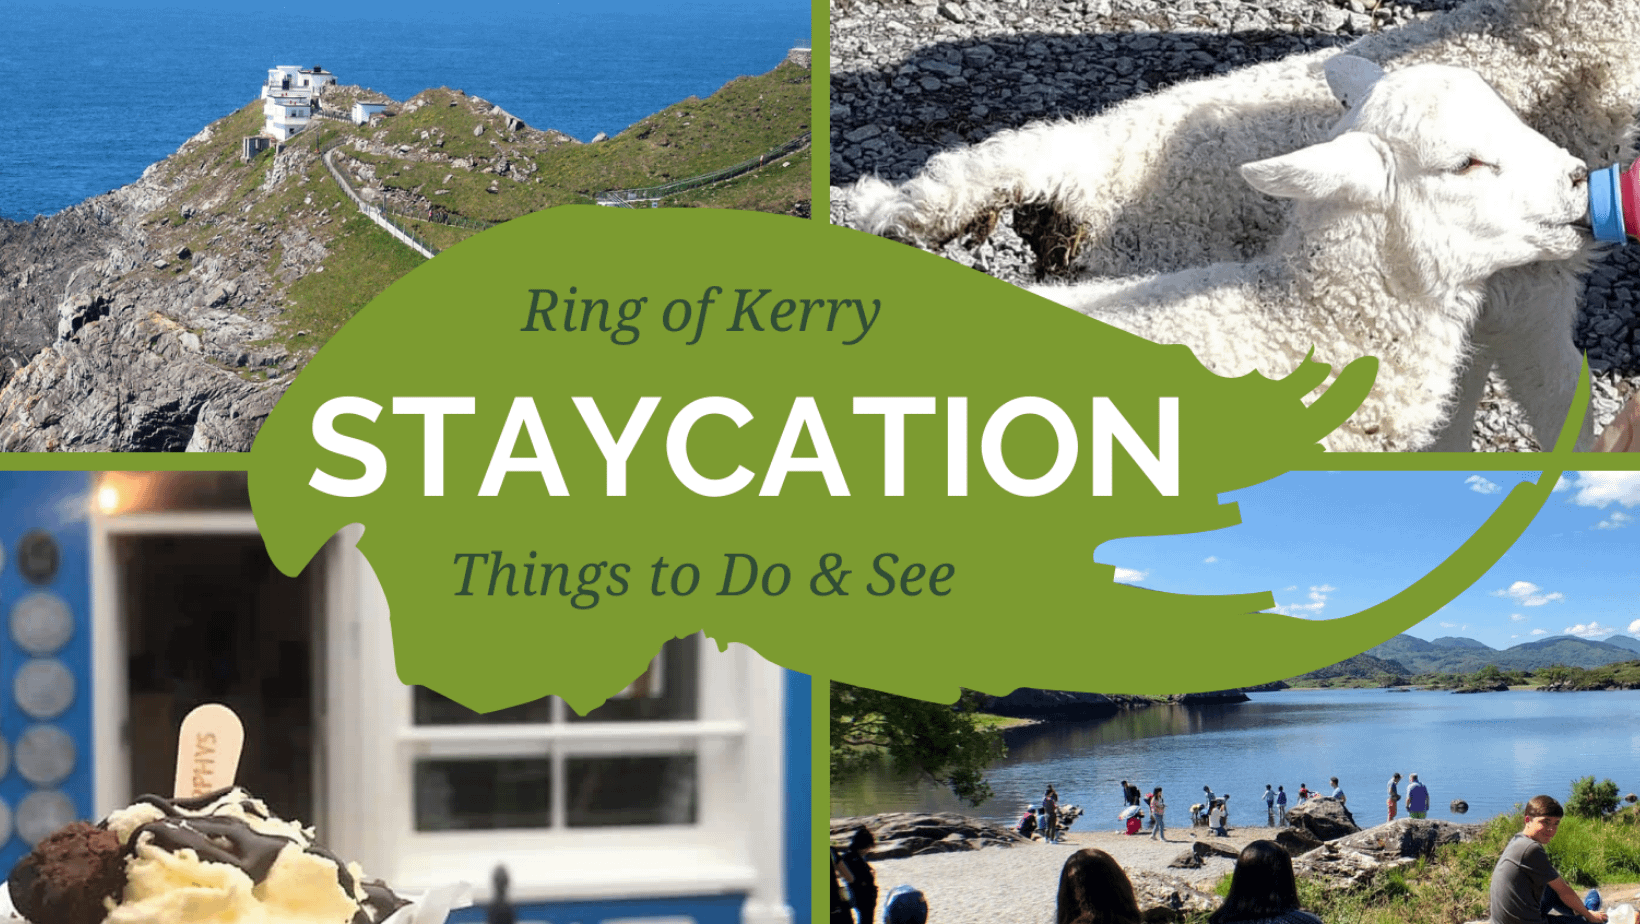 Ring of Kerry staycation things to do and see